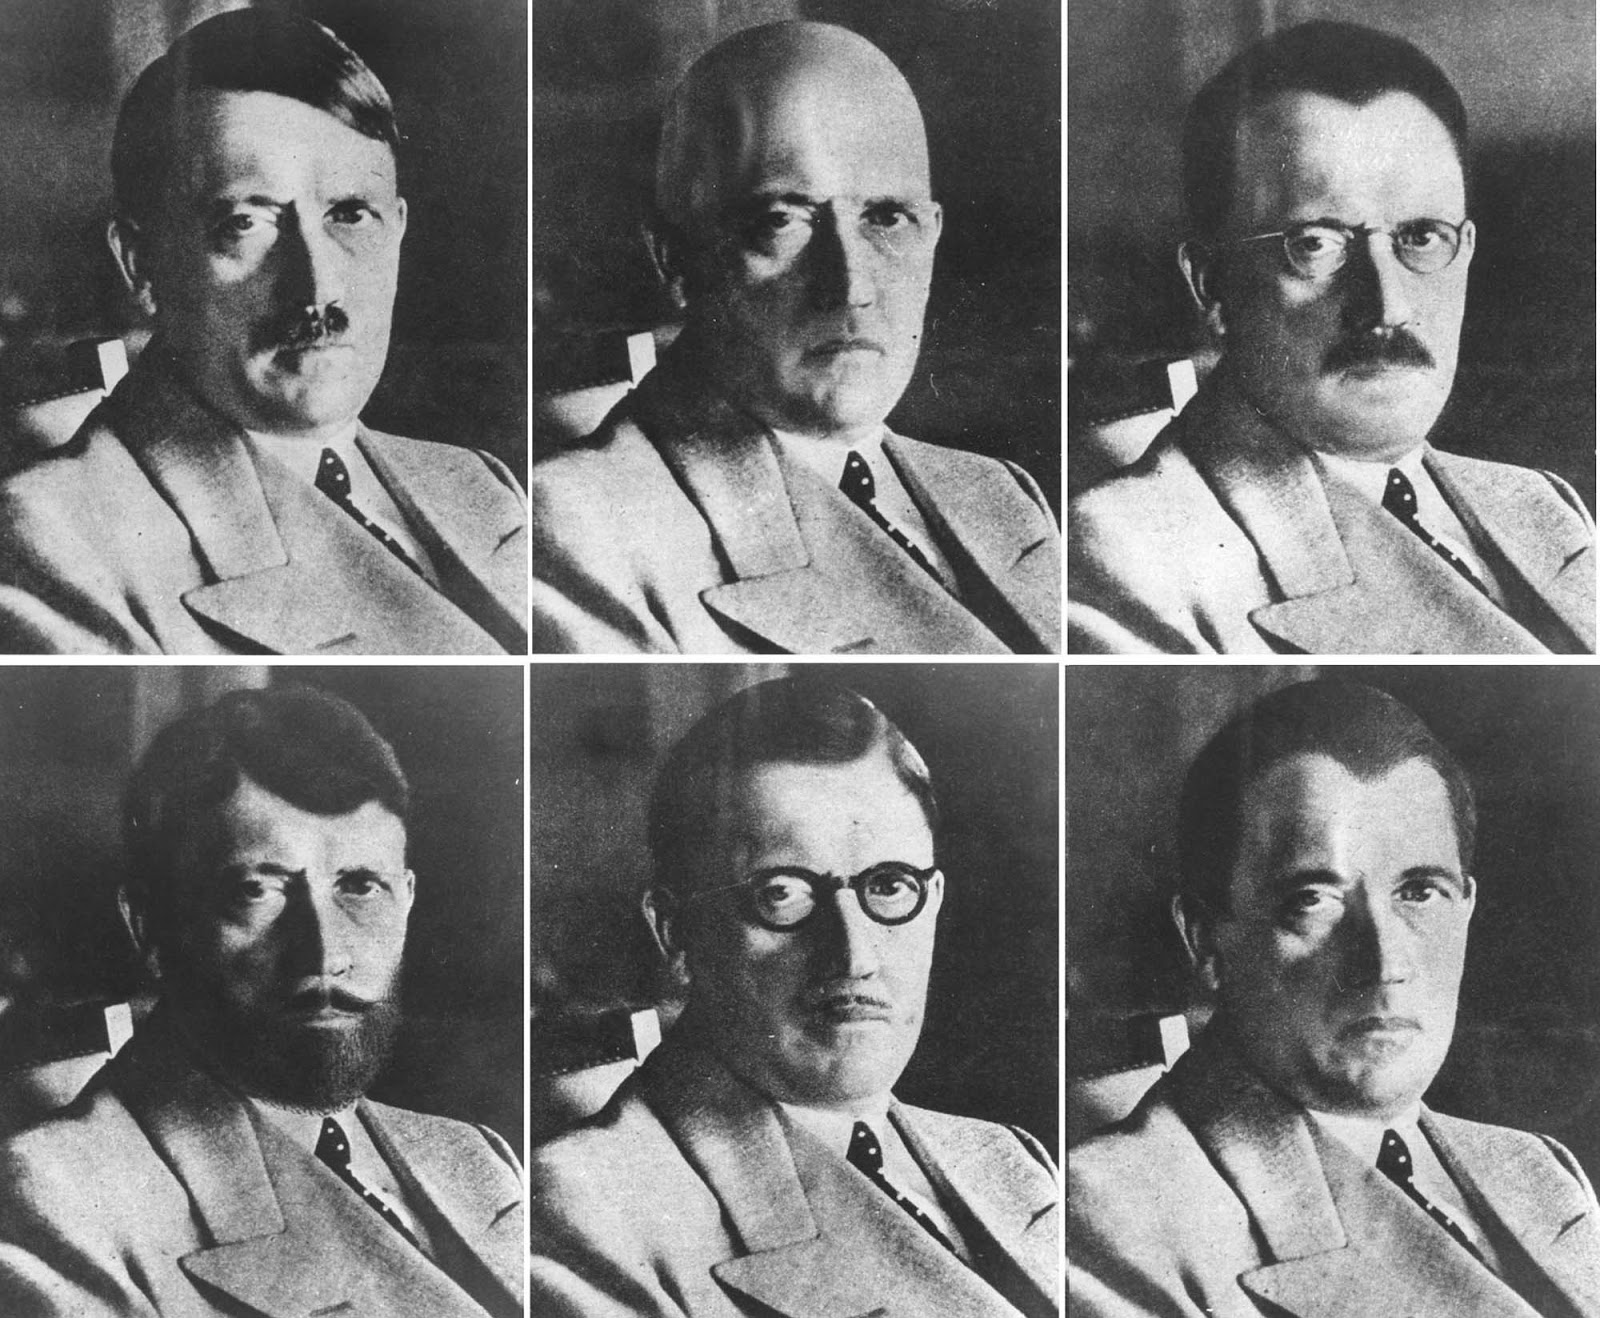 Mockups of how Hitler could have disguised himself.